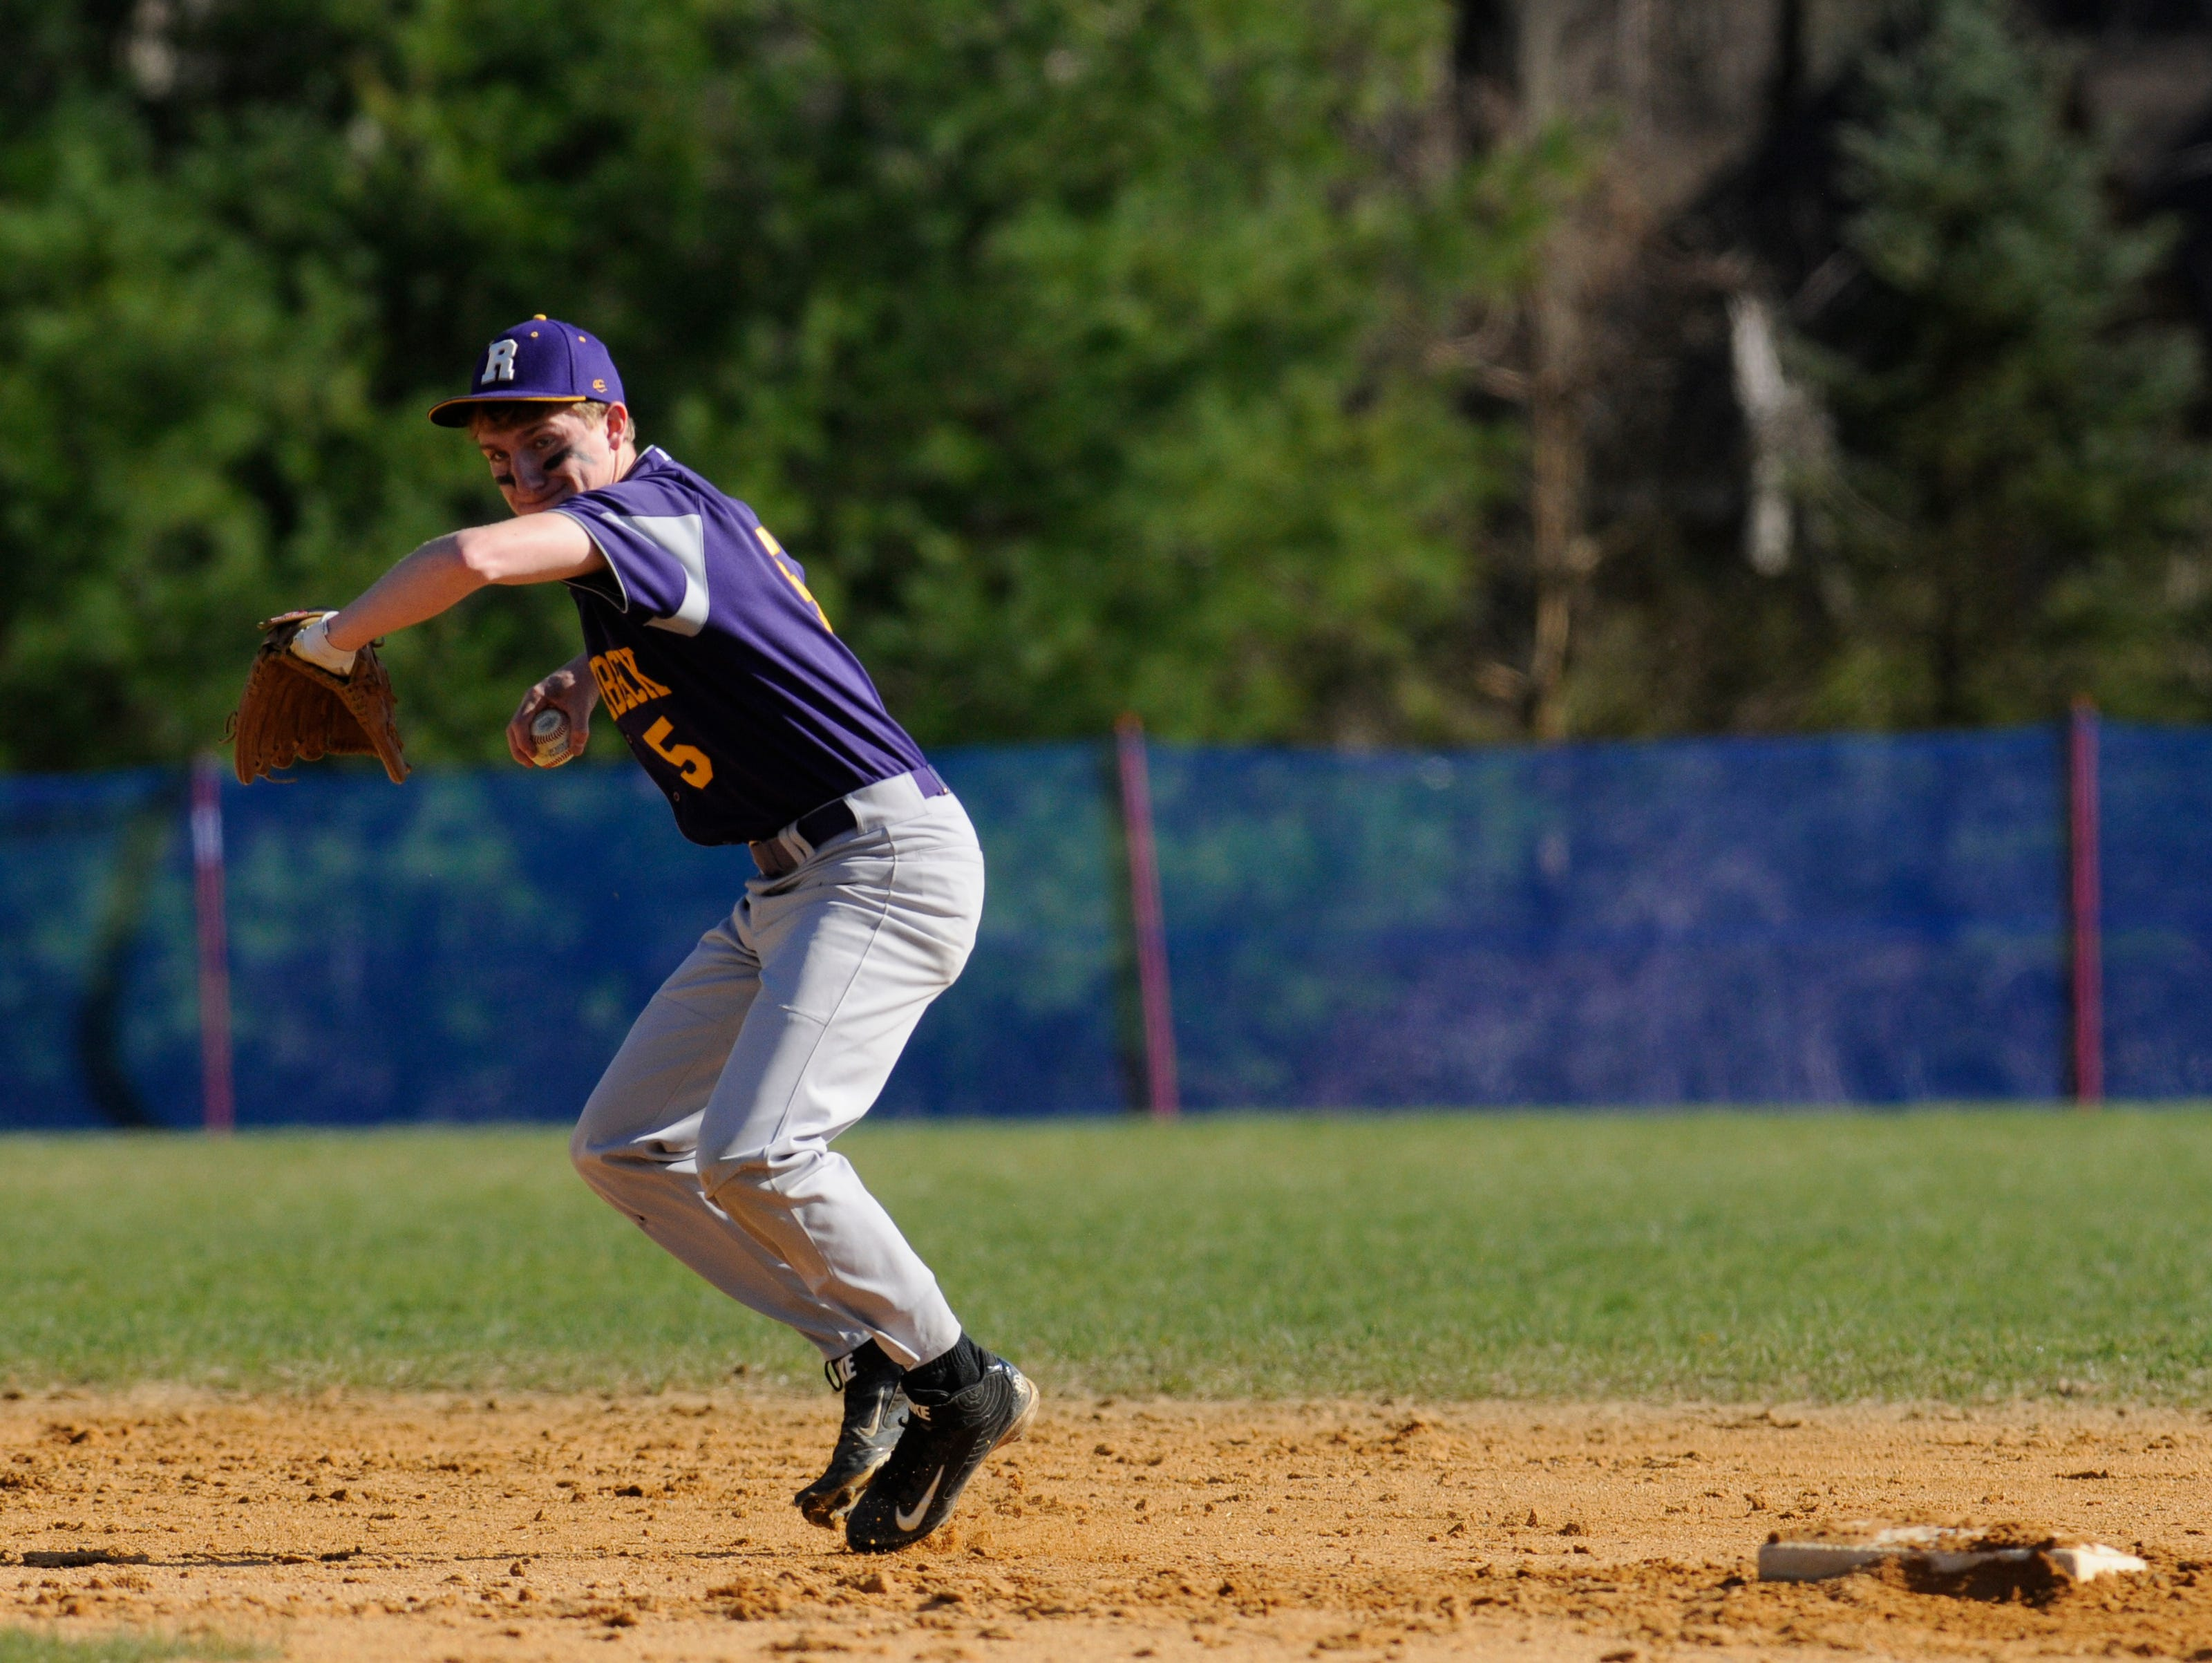 Rhinebeck's Ryan Euell recovers an infield hit during Wednesday's home game versus Webutuck.